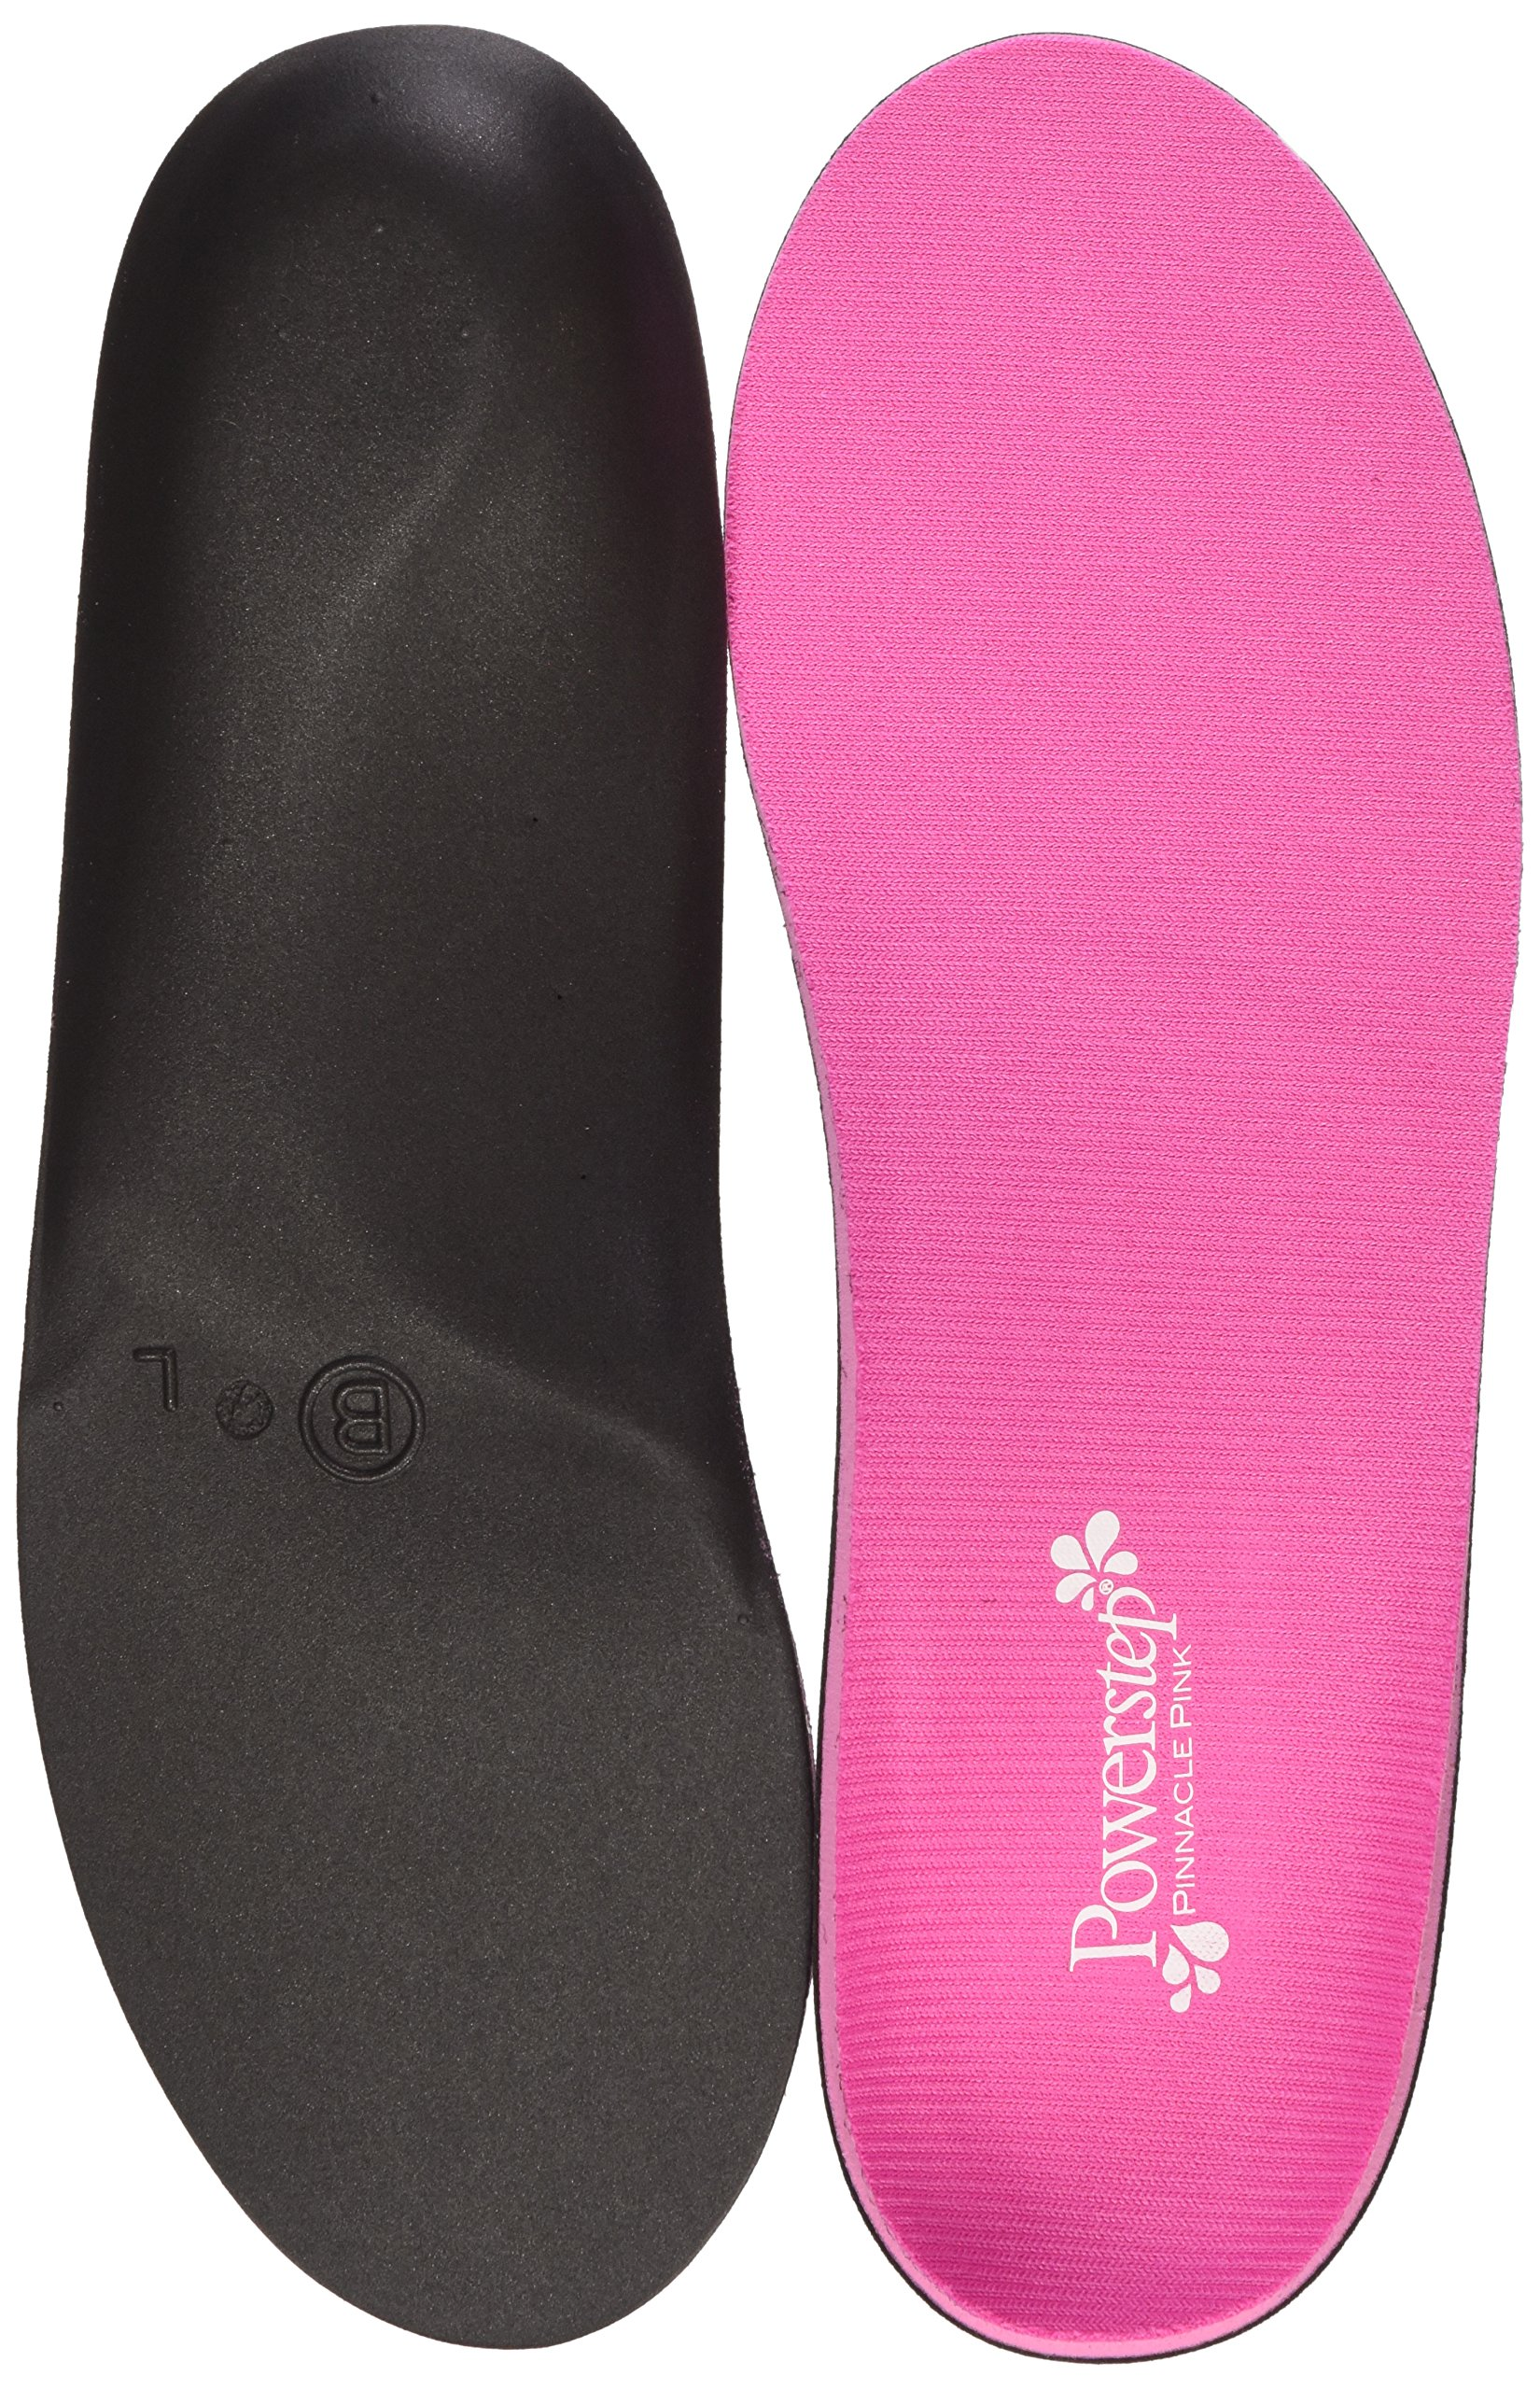 Powerstep Women's Pinnacle Shoe Insoles, Pink, Women's 6-6.5